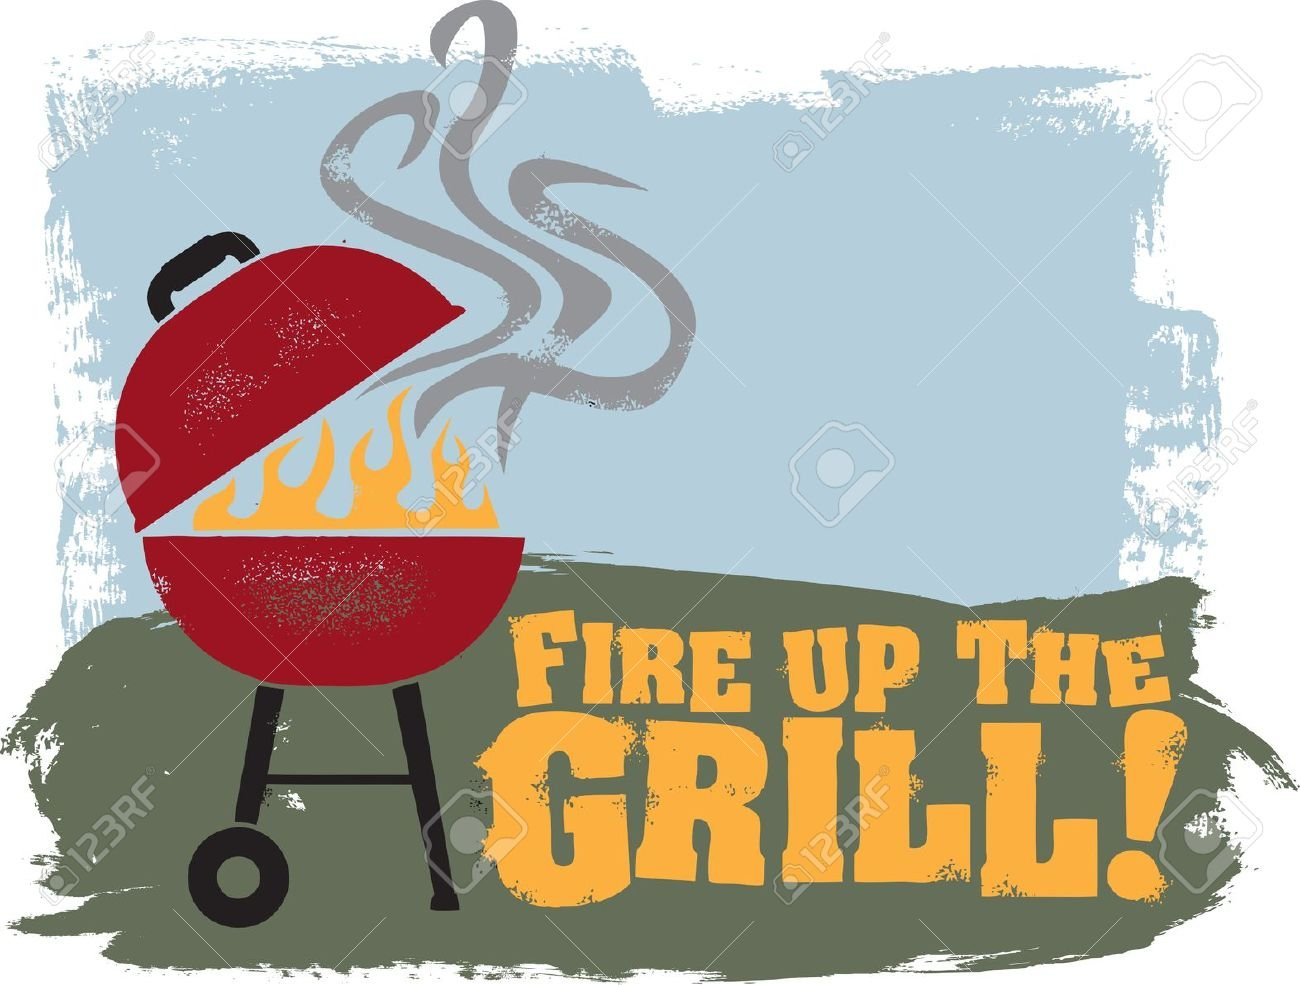 14760605-Backyard-BBQ-Grill-Party-Stock-Vector-barbecue.jpg